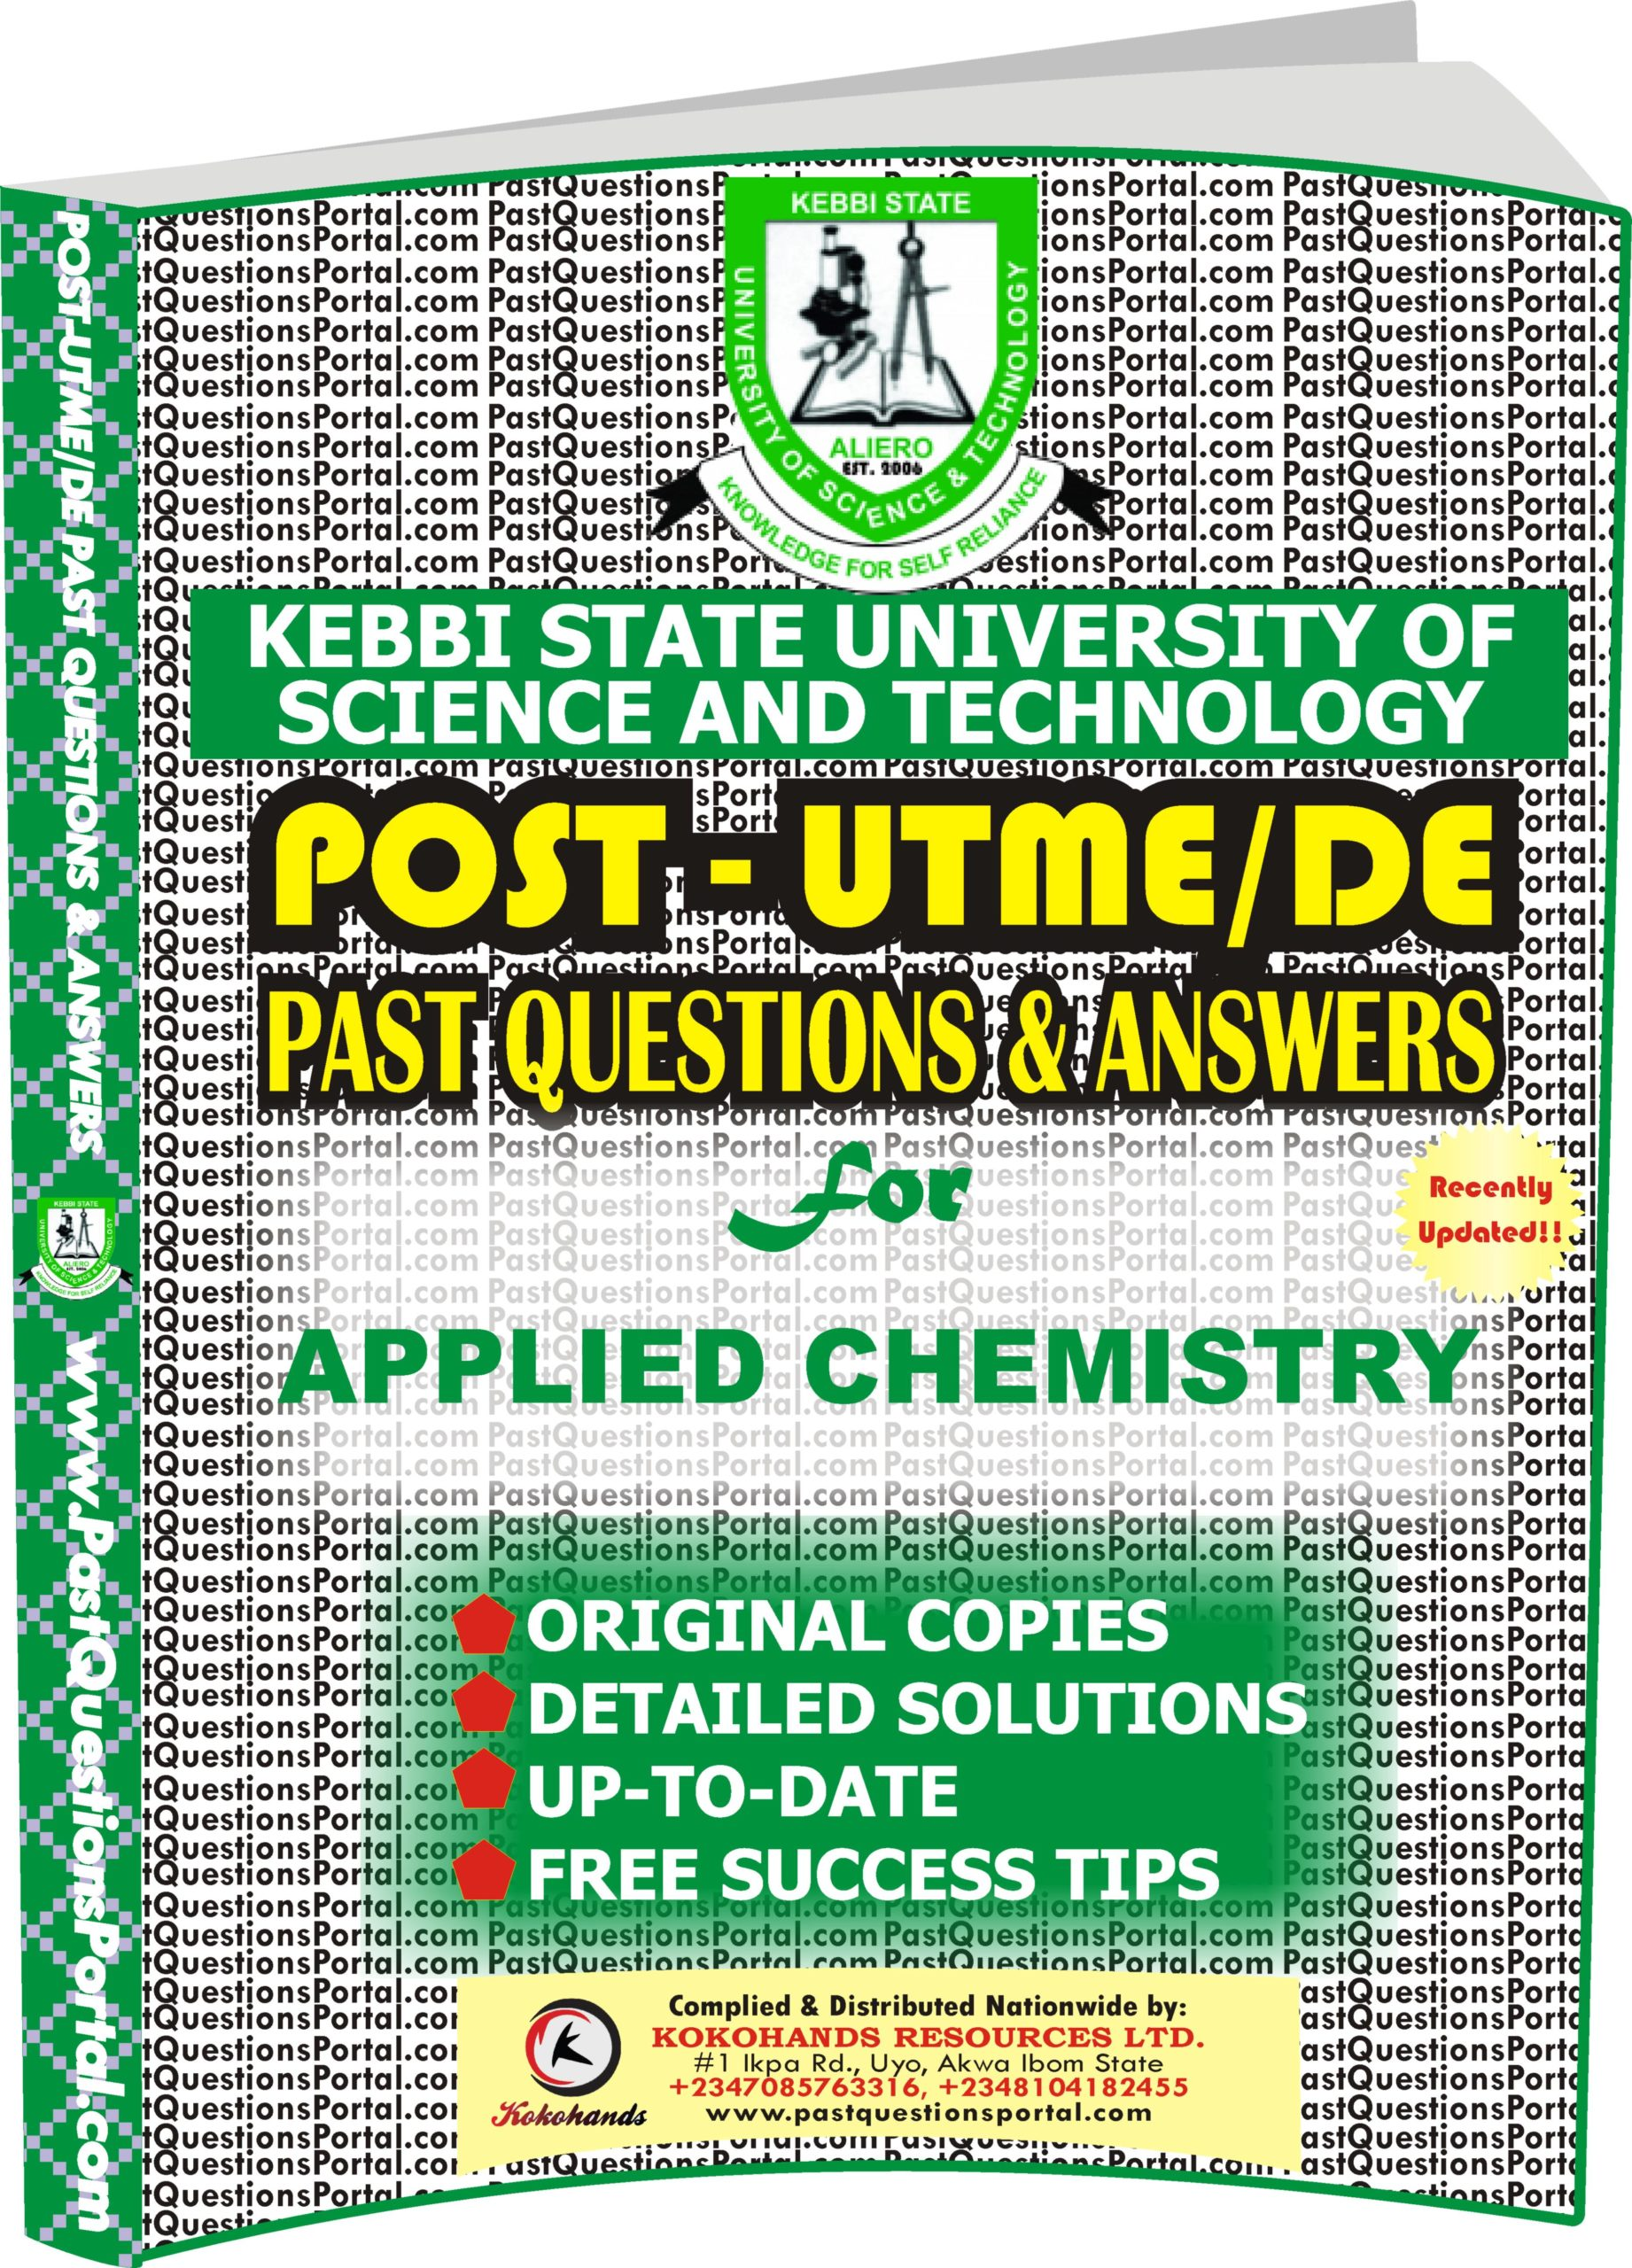 KSUSTA Post UTME Past Questions for APPLIED CHEMISTRY